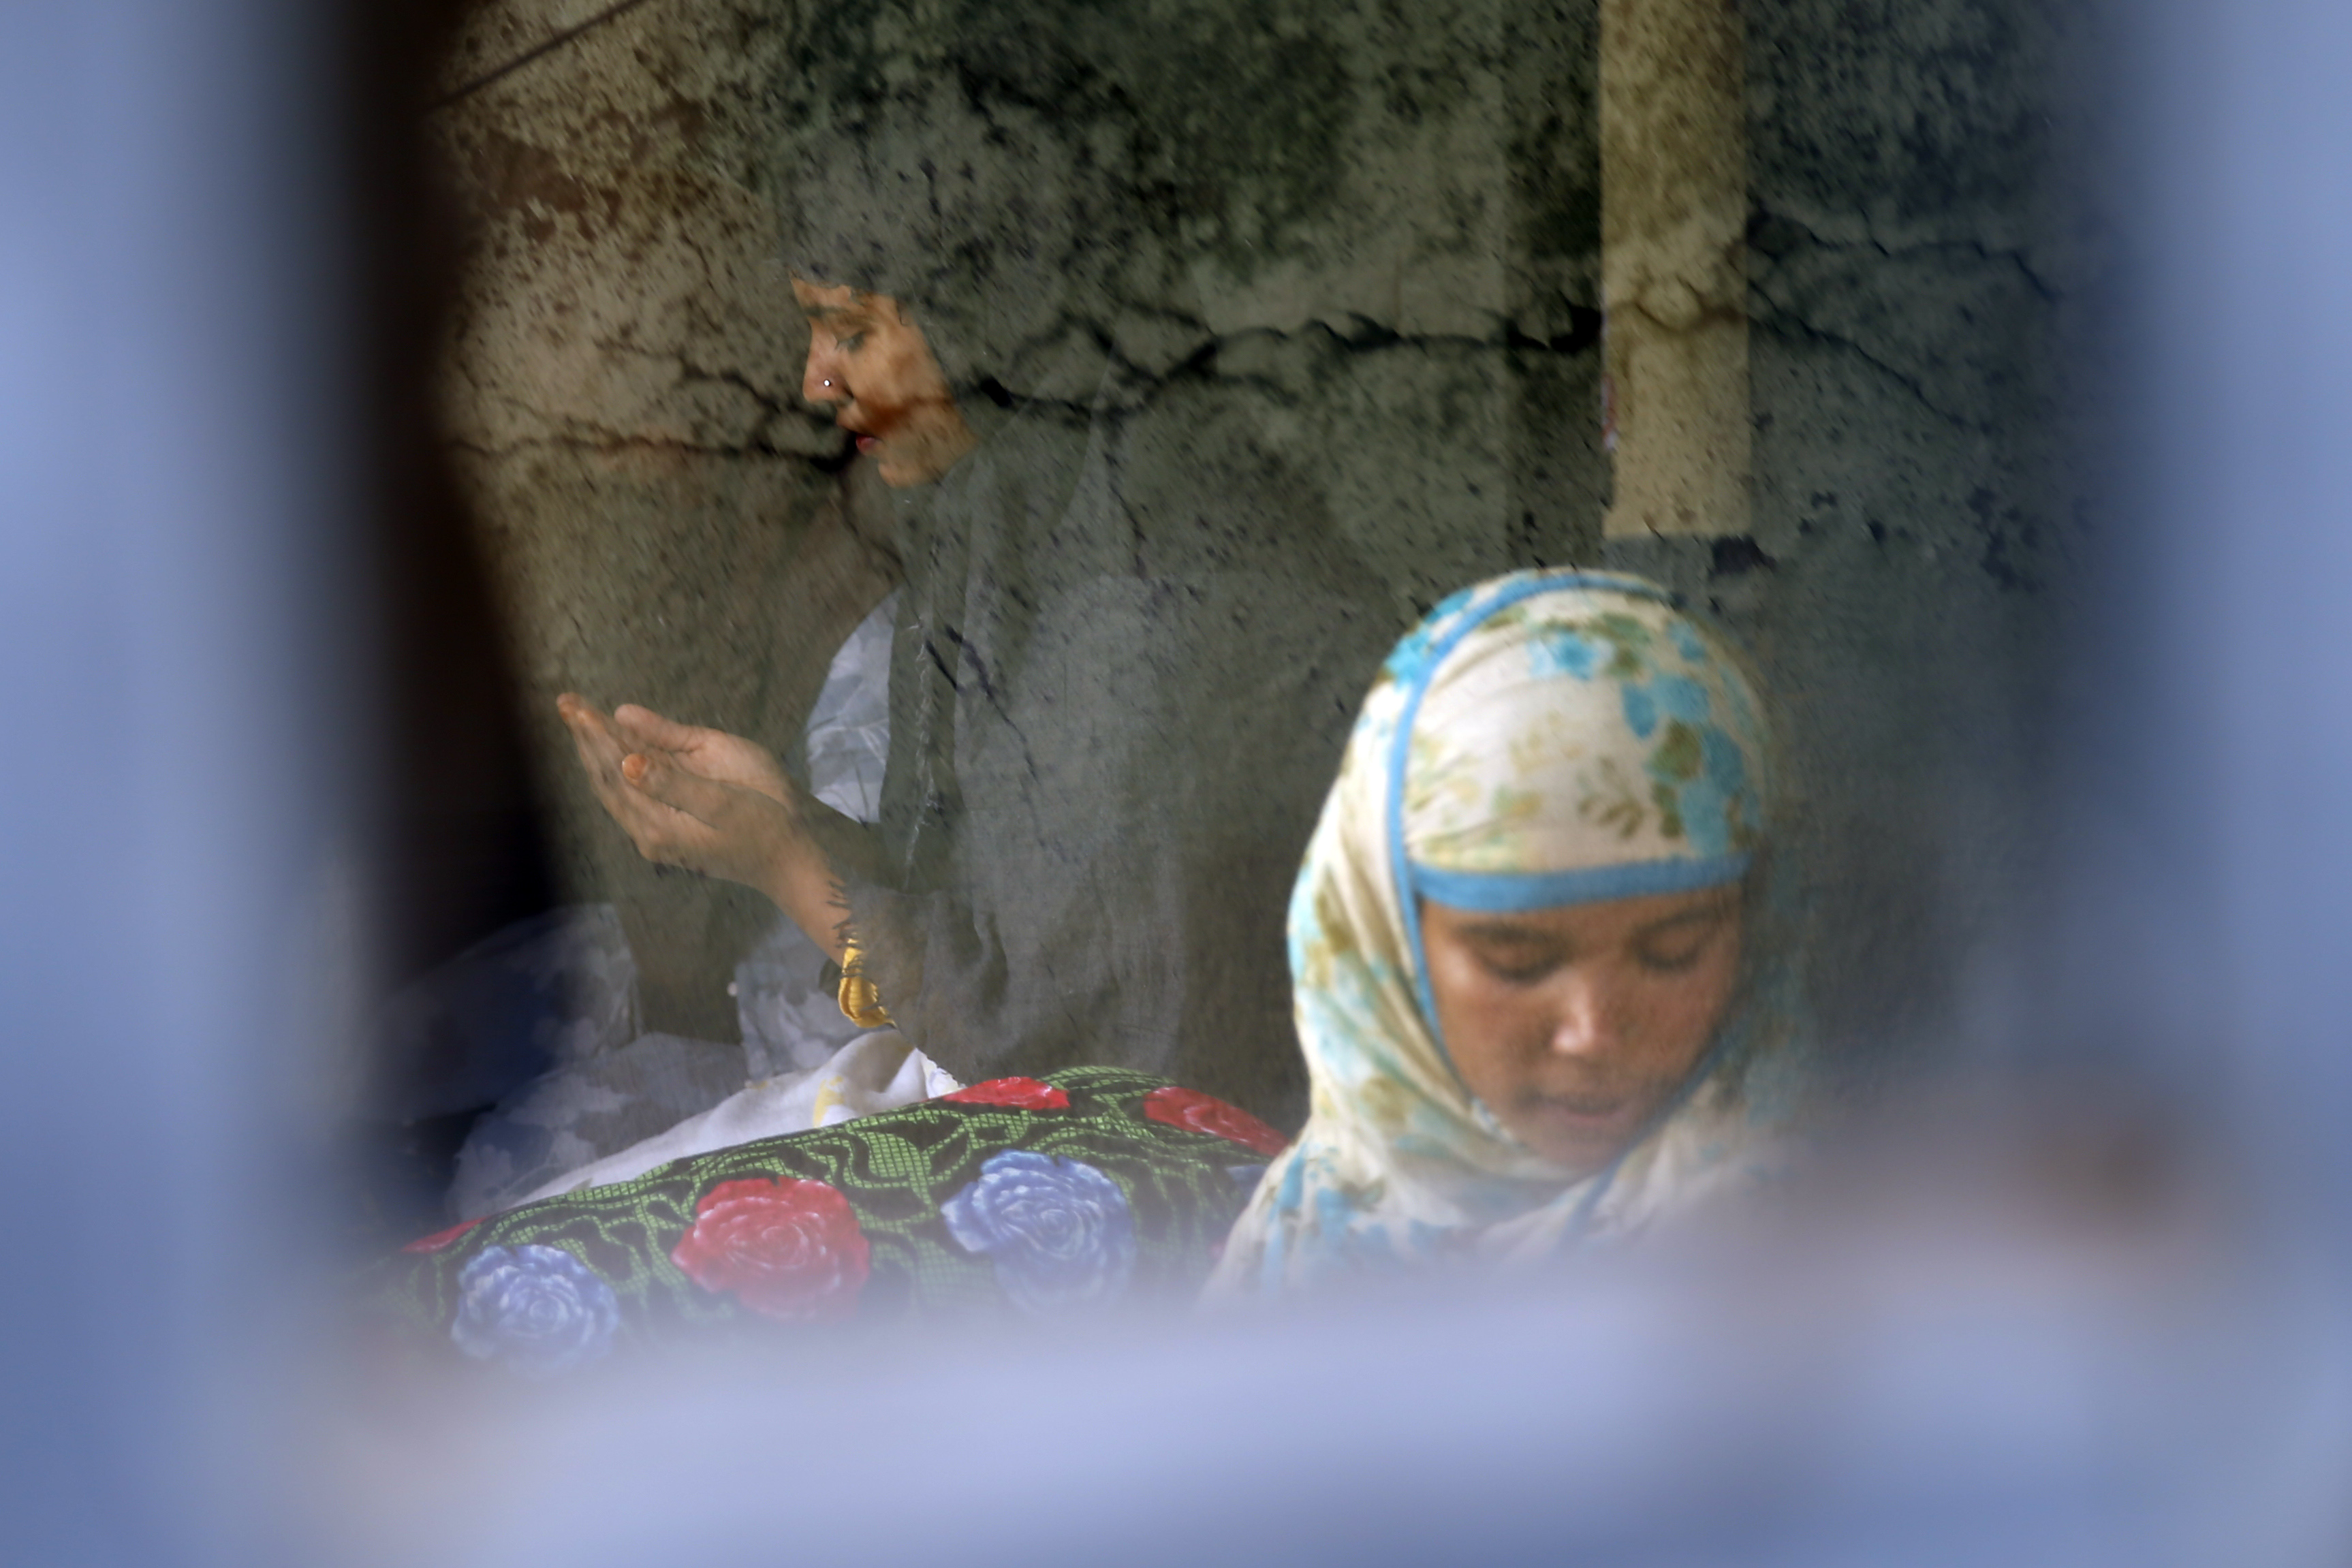 People from the Muslim community pray during the holy month of Ramadan at their home, on the 33rd day of government-imposed lockdown, amid concerns over the spread of COVID-19, in Kathmandu, on Saturday, April 25, 2020. Photo: Skanda Gautam/THT